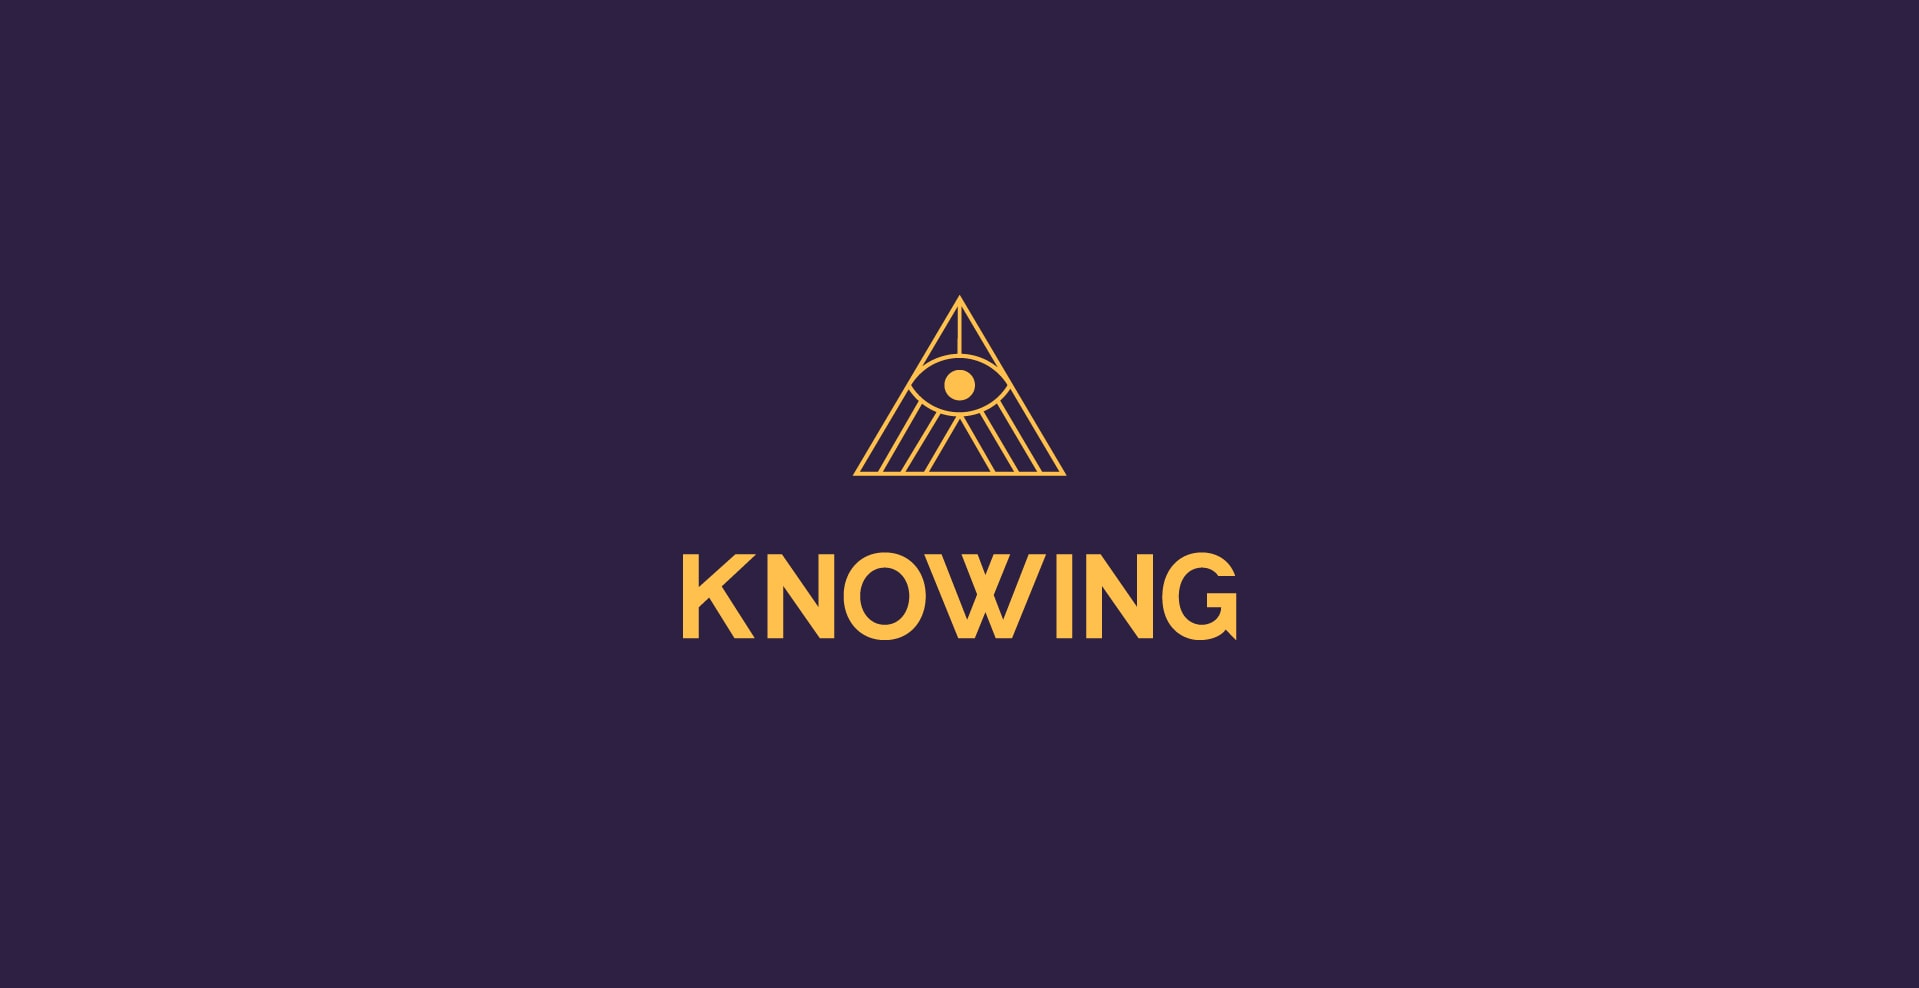 Knowing-casestudy2-2